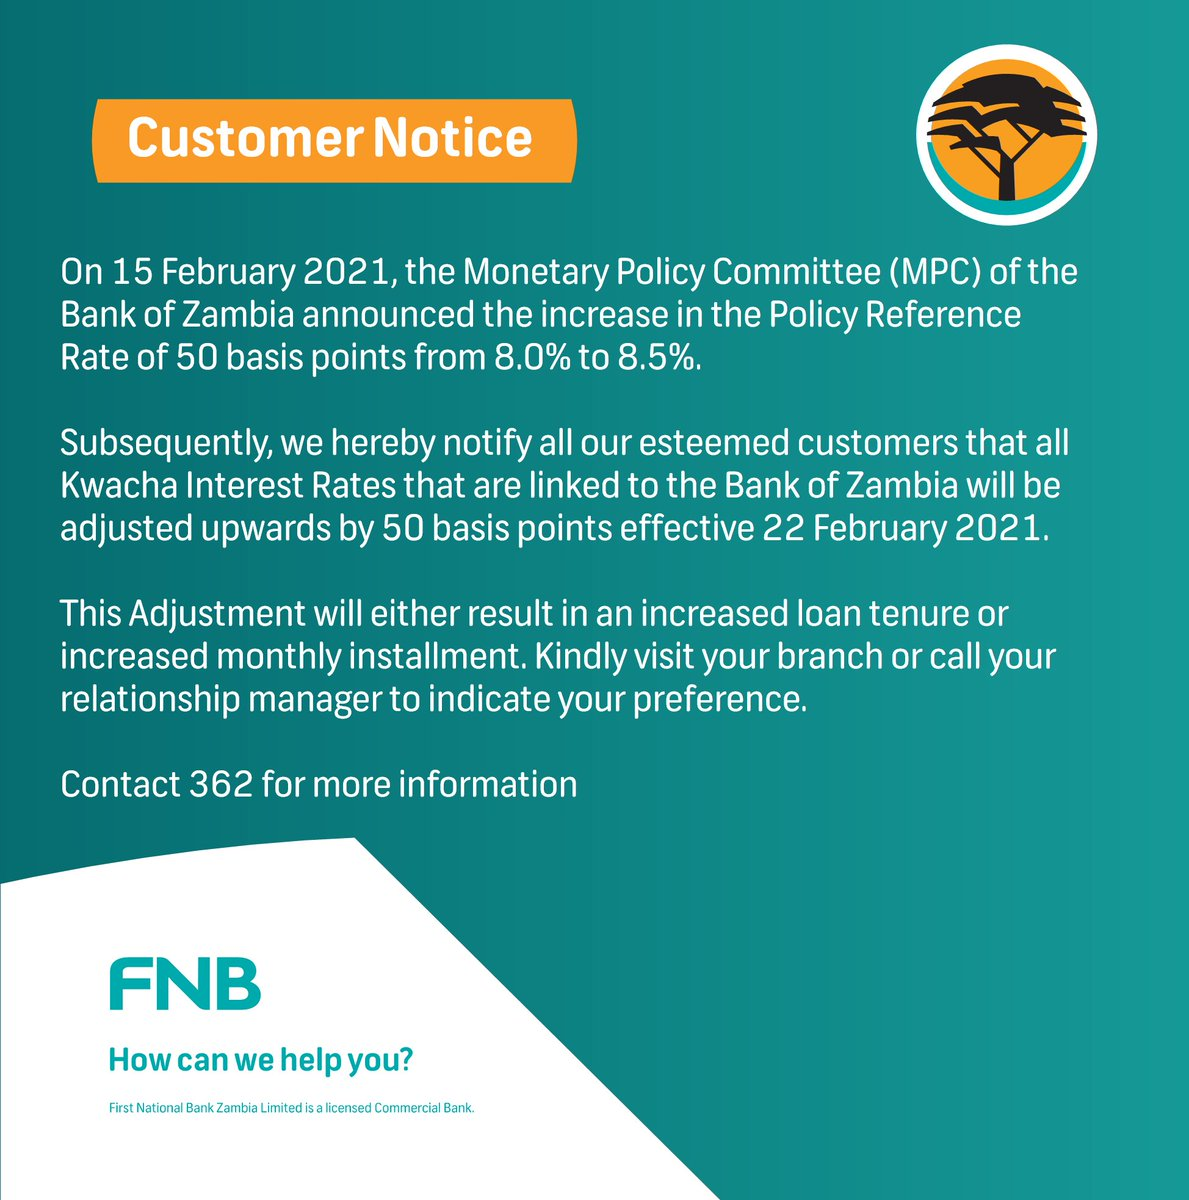 Please see below customer notice concerning the revision of MPC Rates by the Bank of Zambia https://t.co/fj79frMKeu